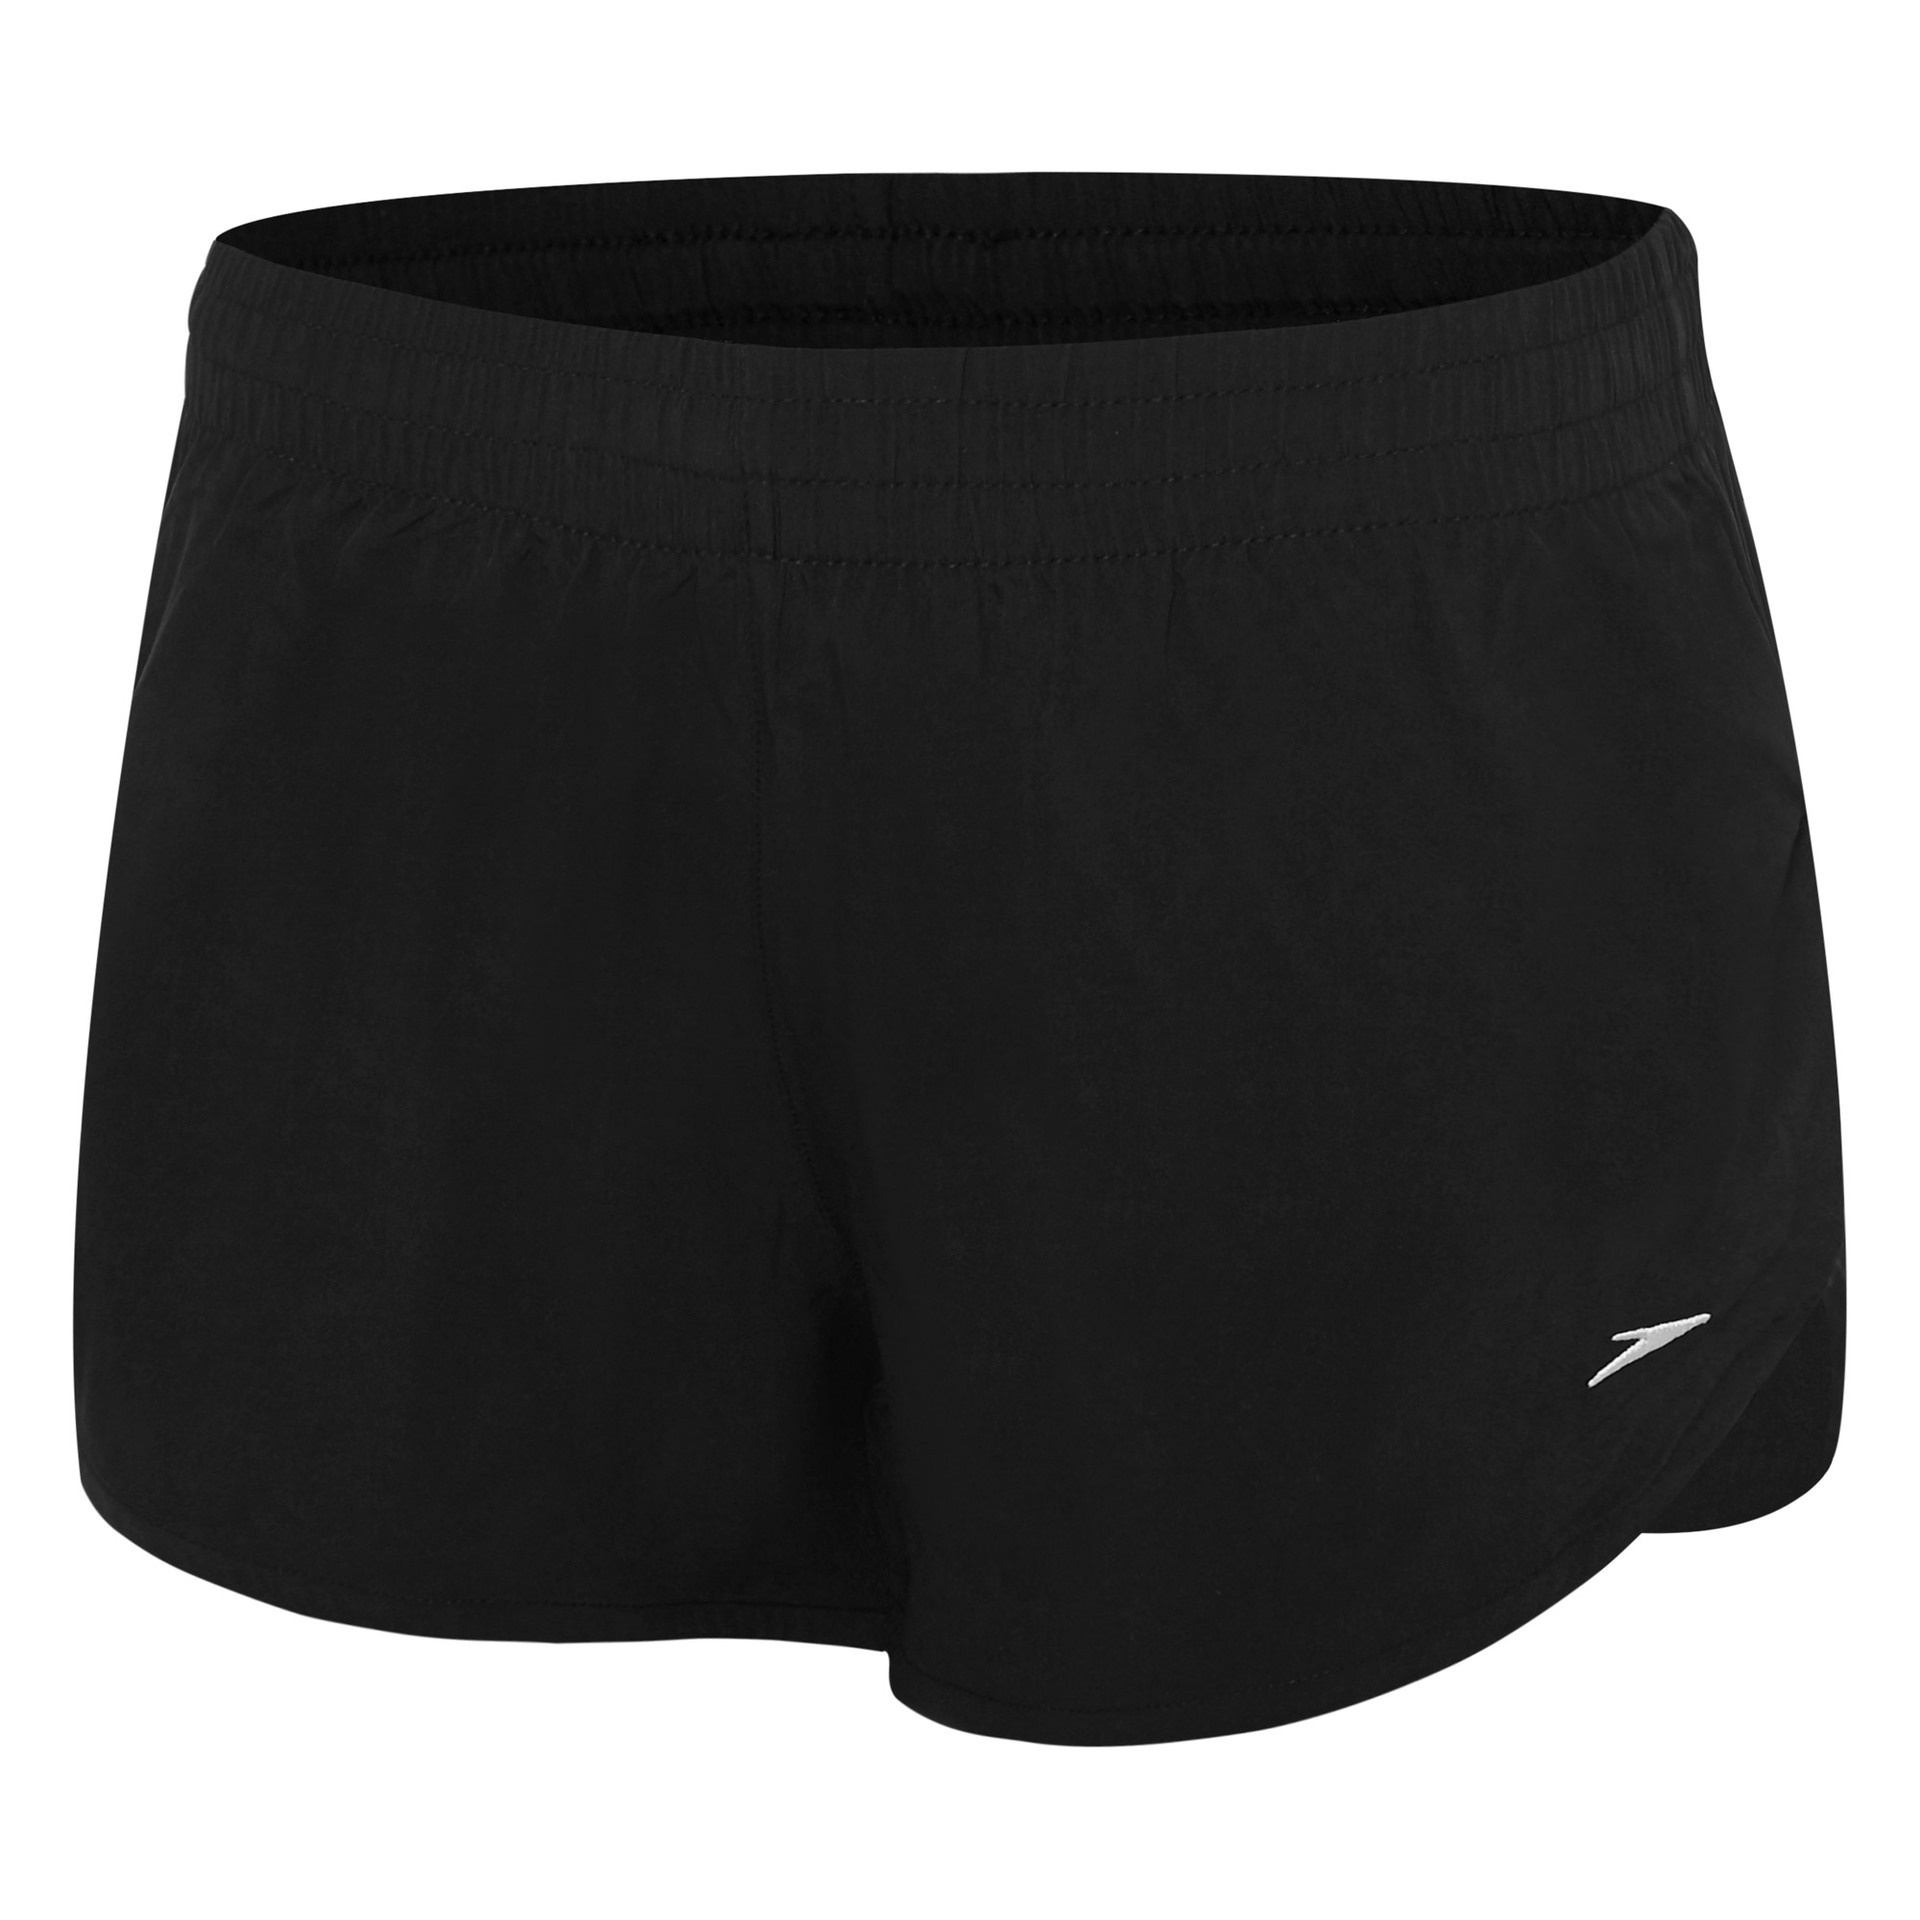 Womens Workout Short Black